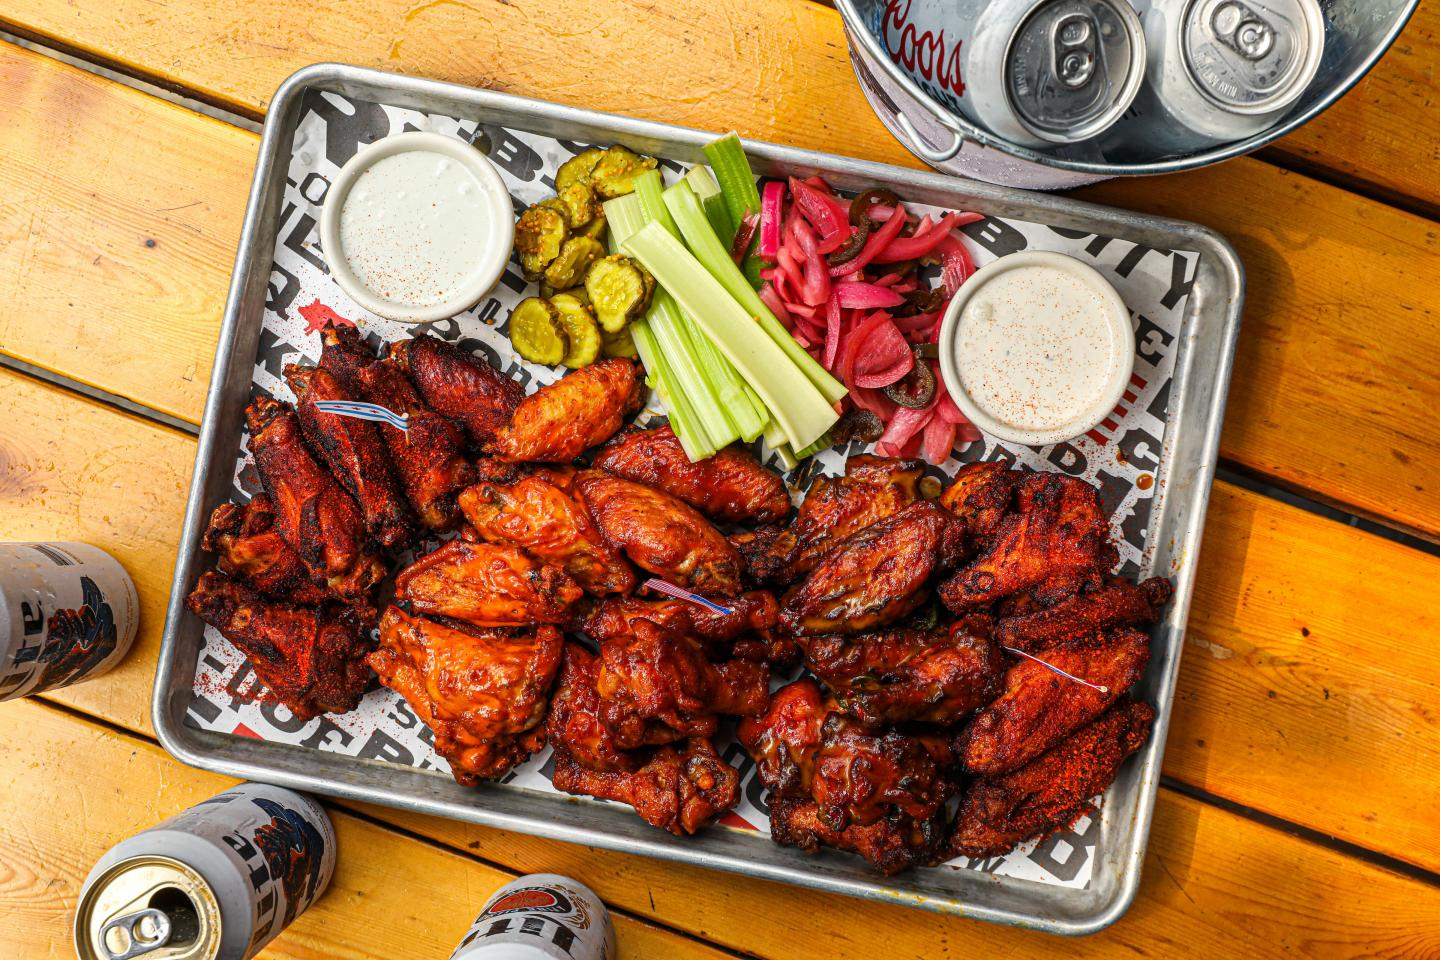 Bub City Wing Tray football carryout